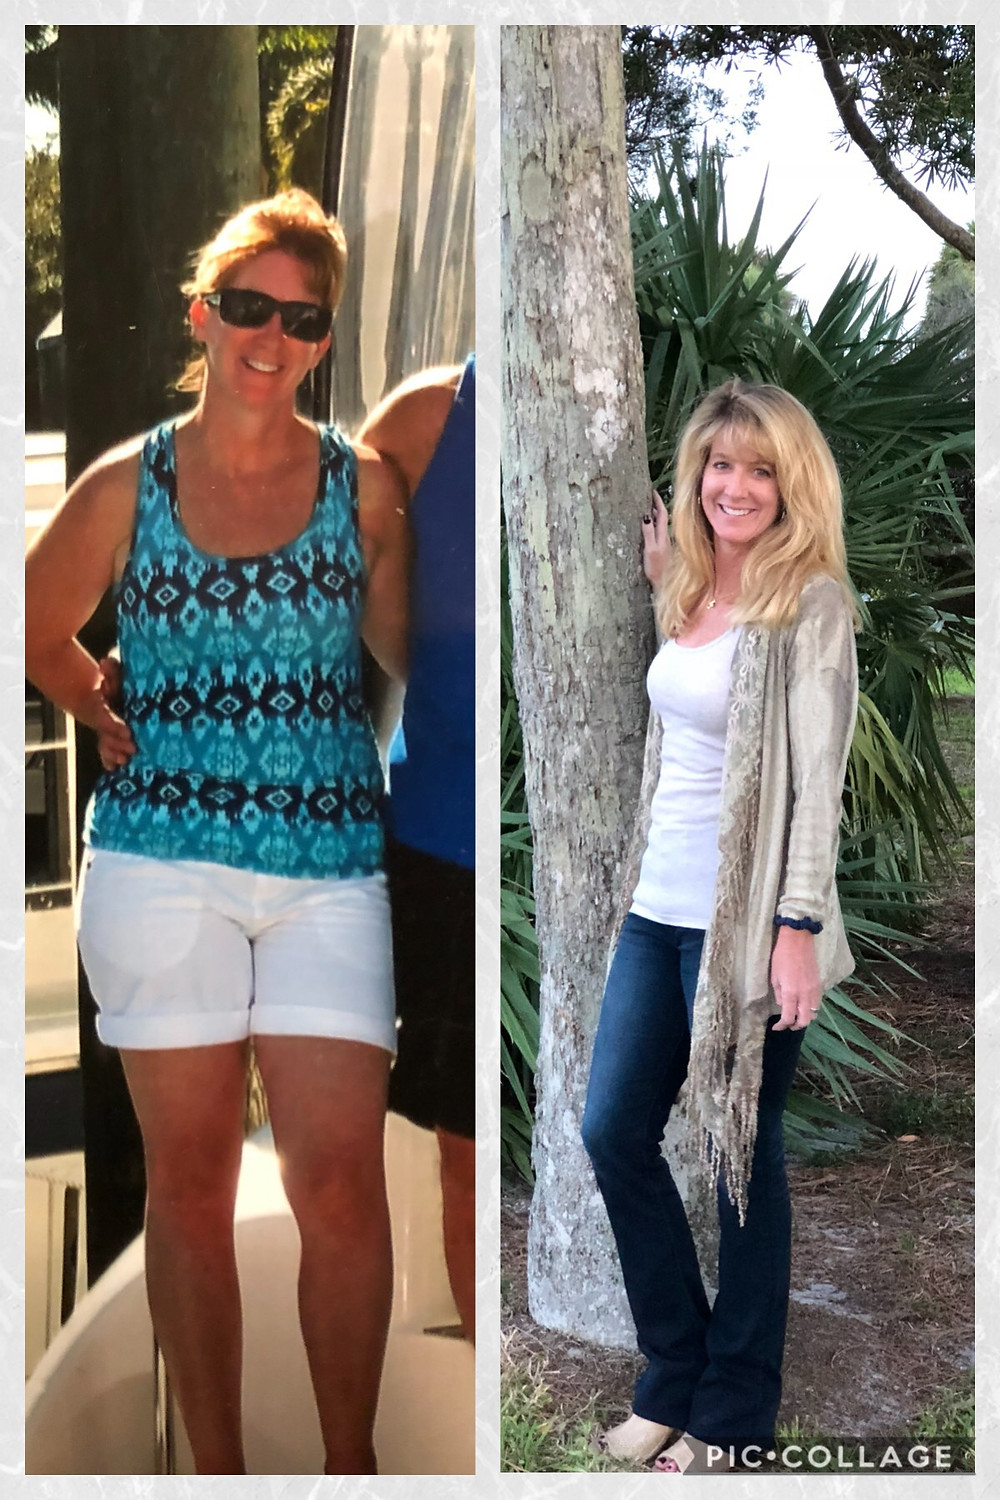 Woman at 142 pounds, then weighs 120 pounds.